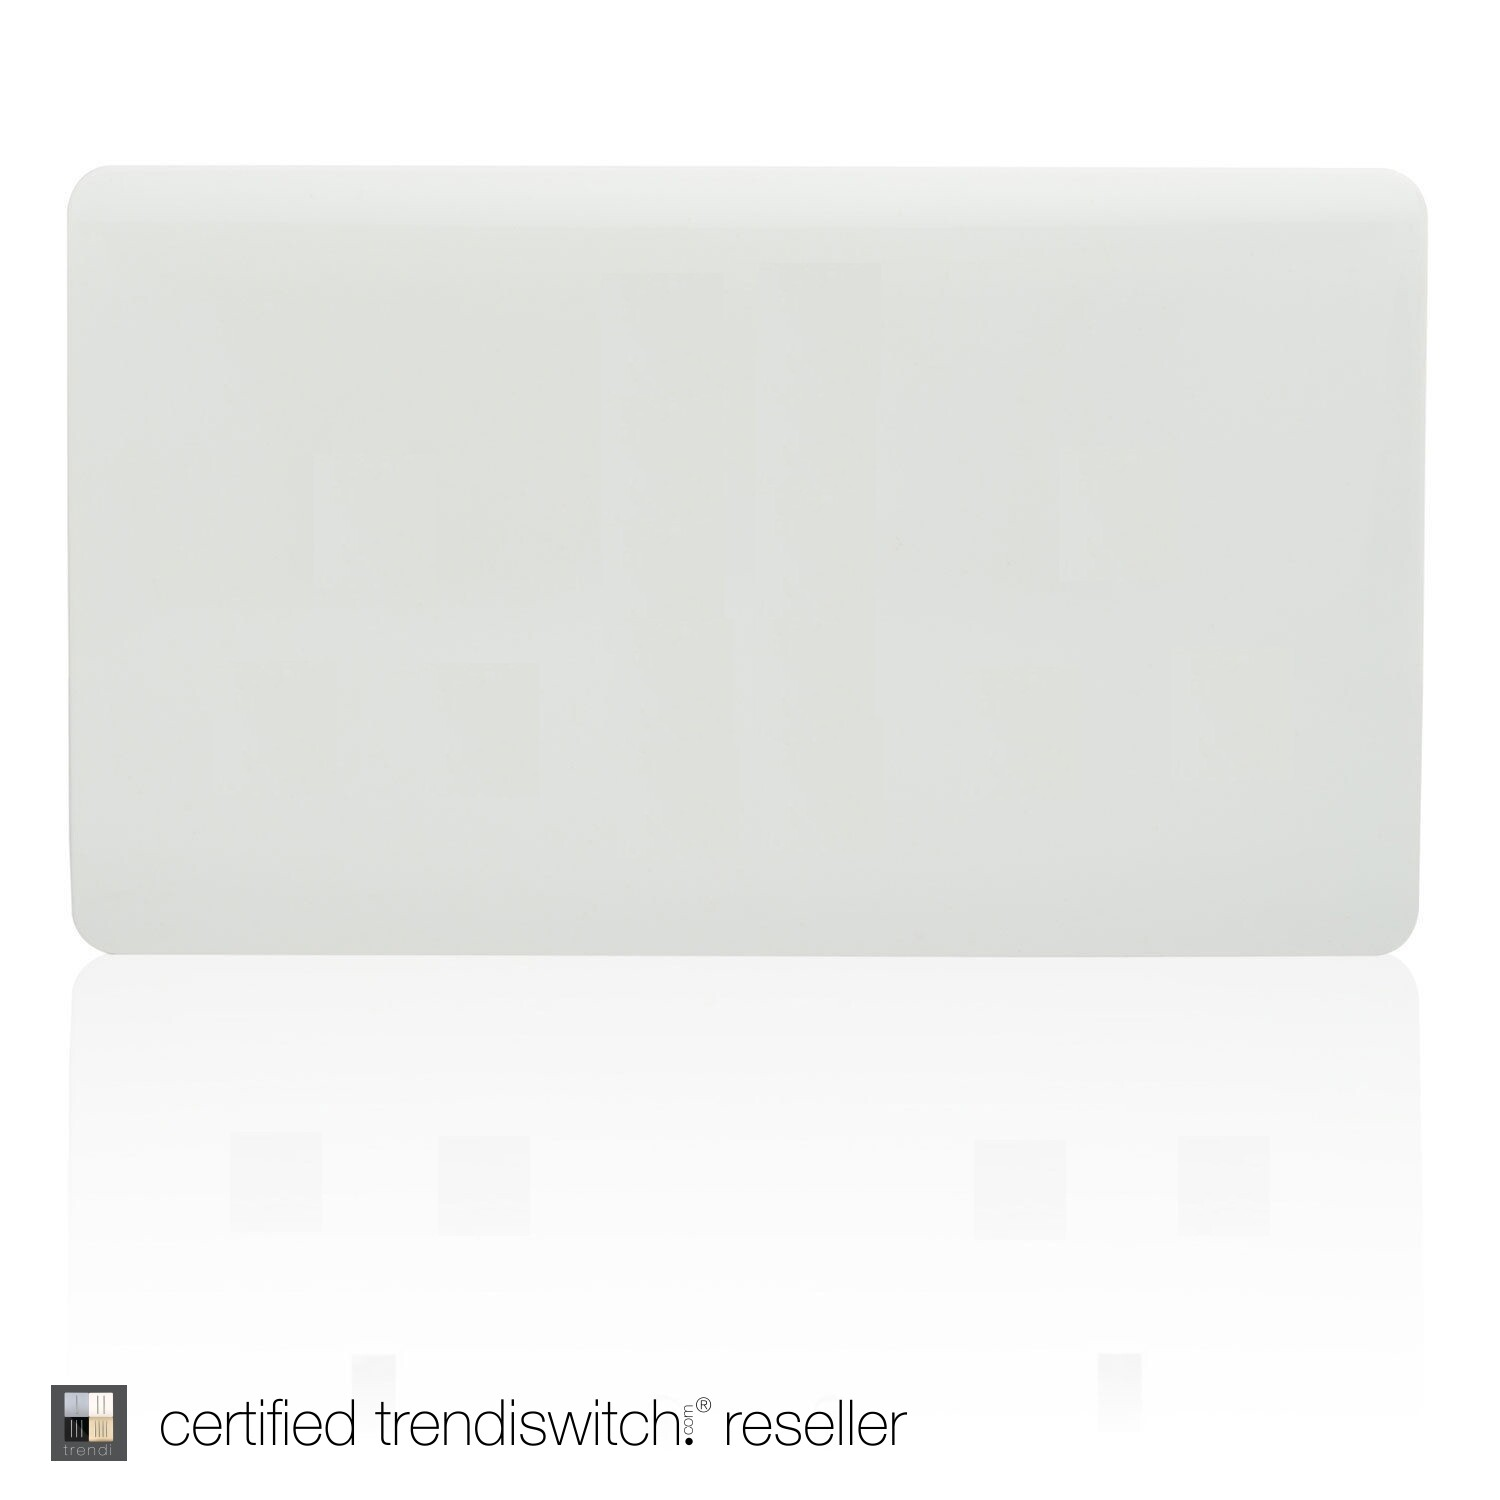 Trendi, Artistic Modern Double Blanking Plate, Gloss White Finish, BRITISH MADE, 5yrs warranty